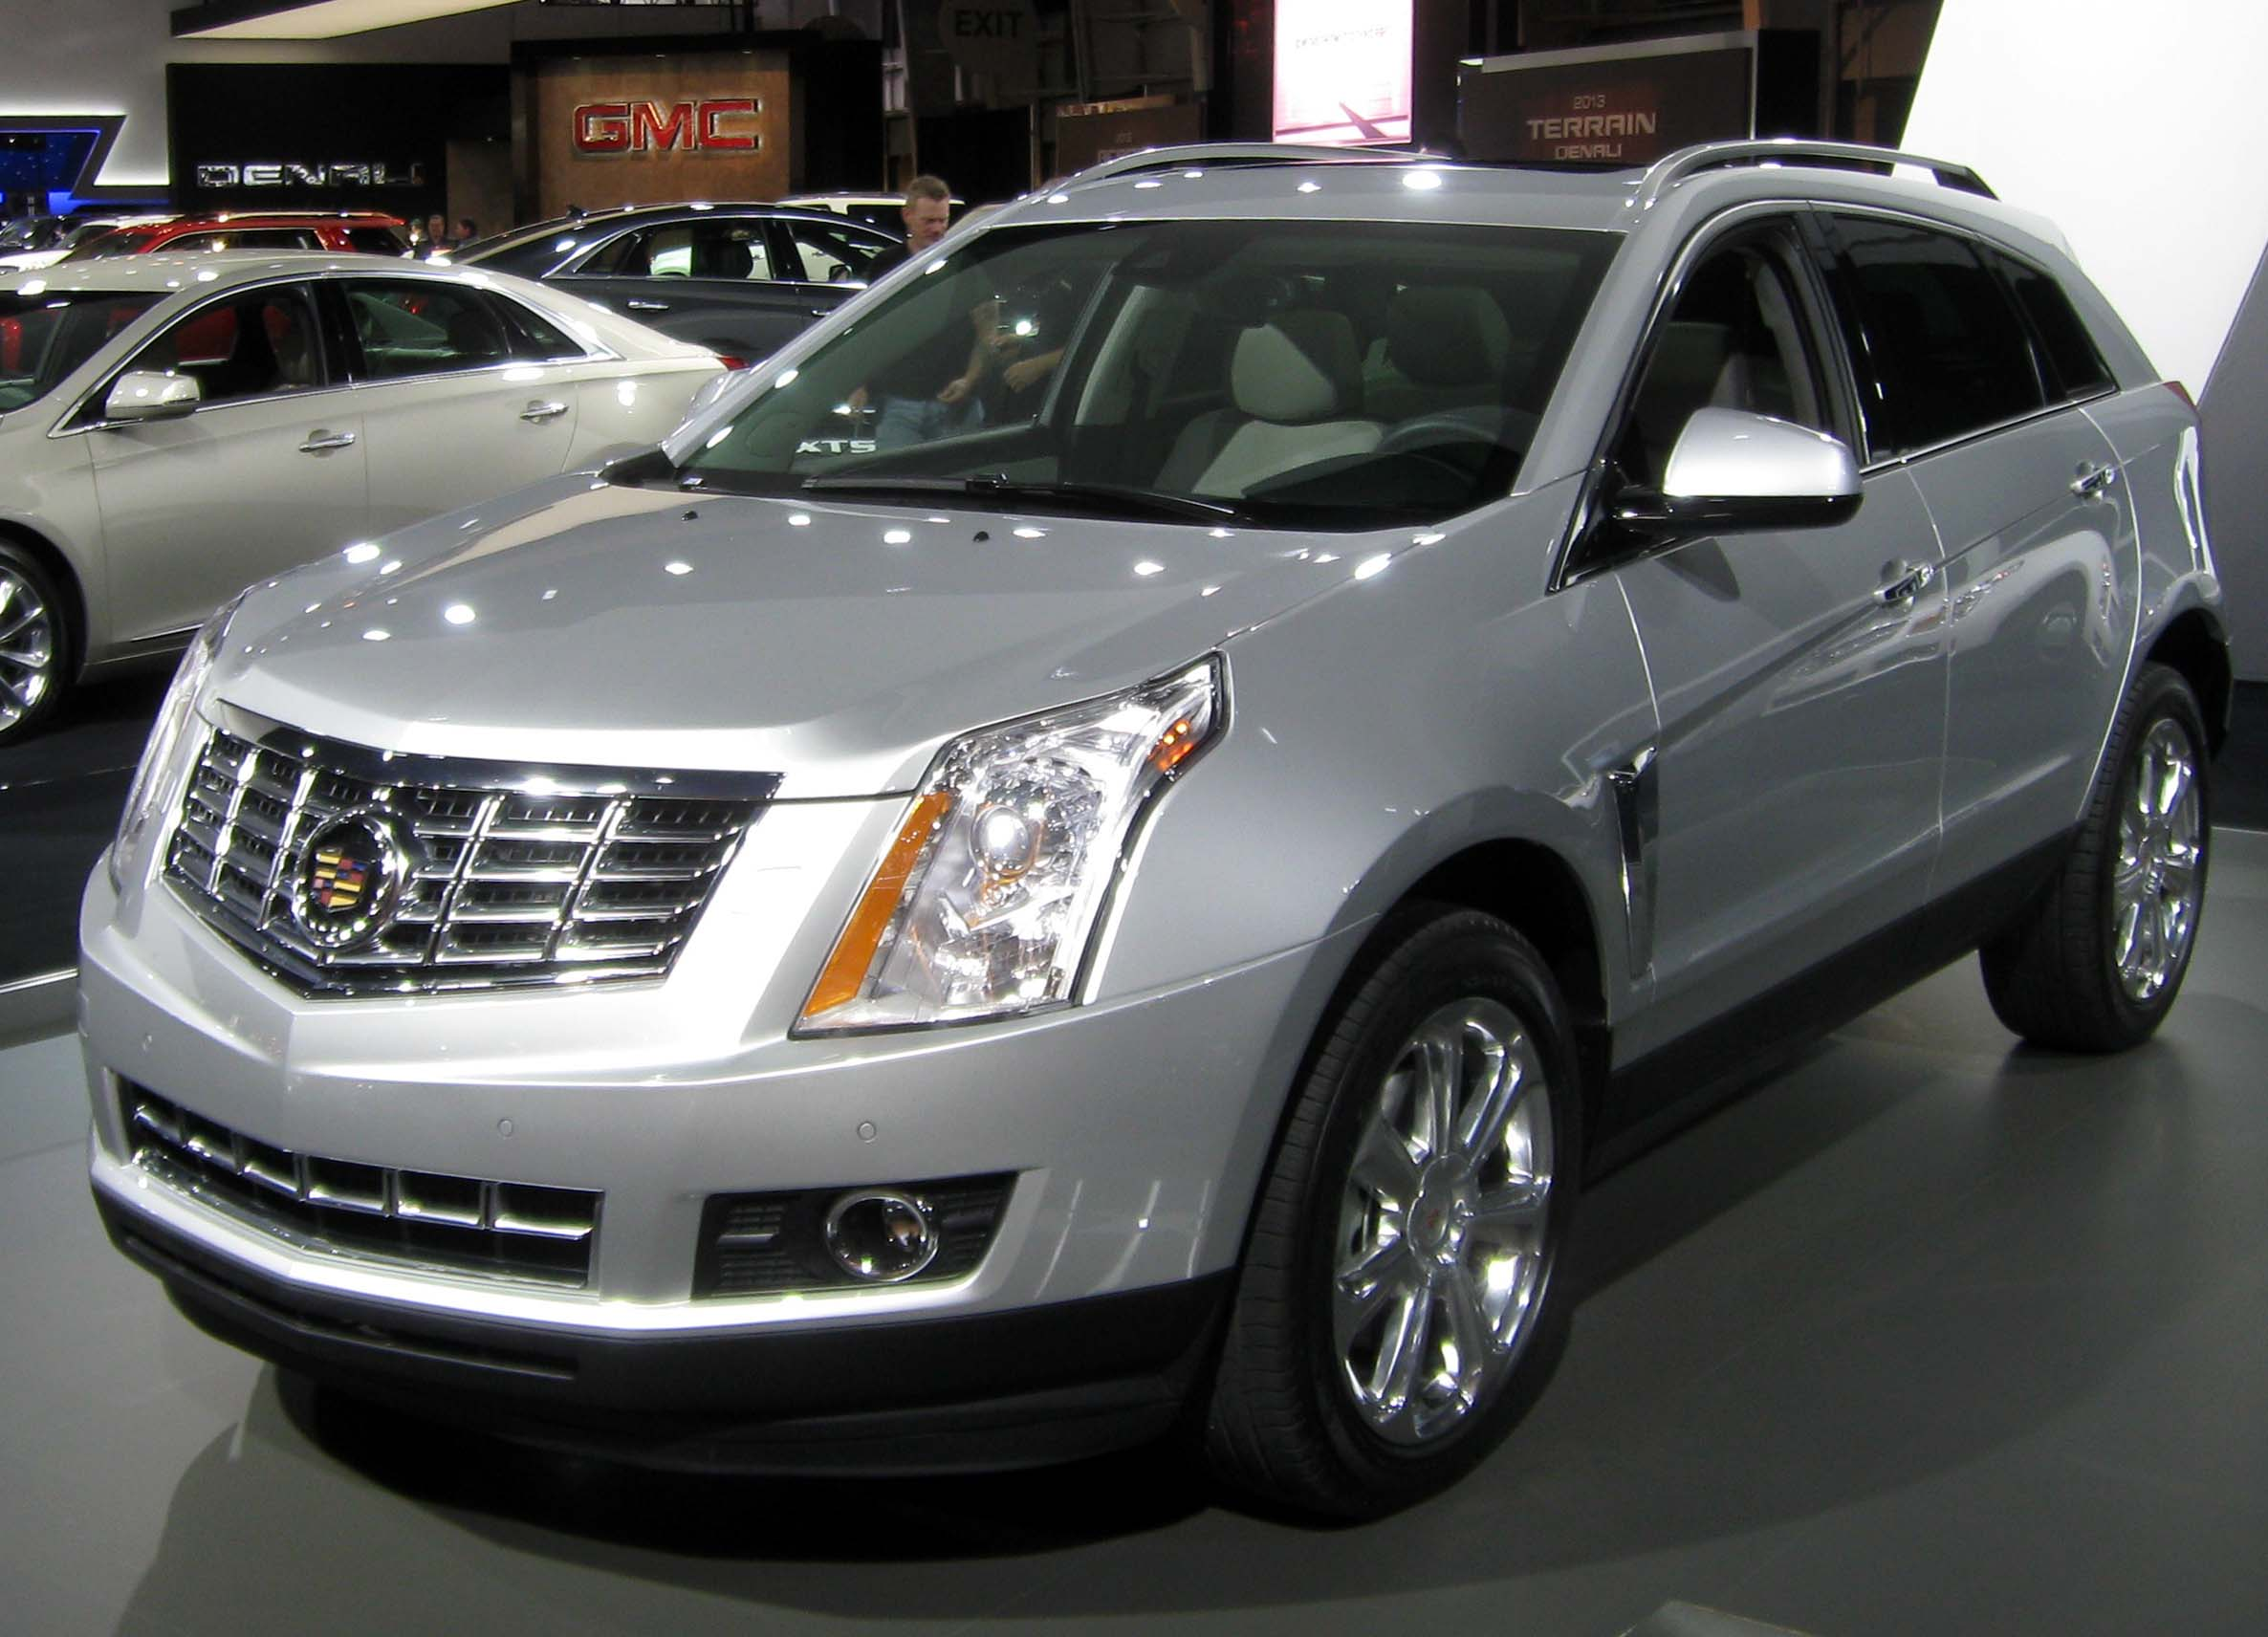 srx good living vehicles condition title qatar cadillac